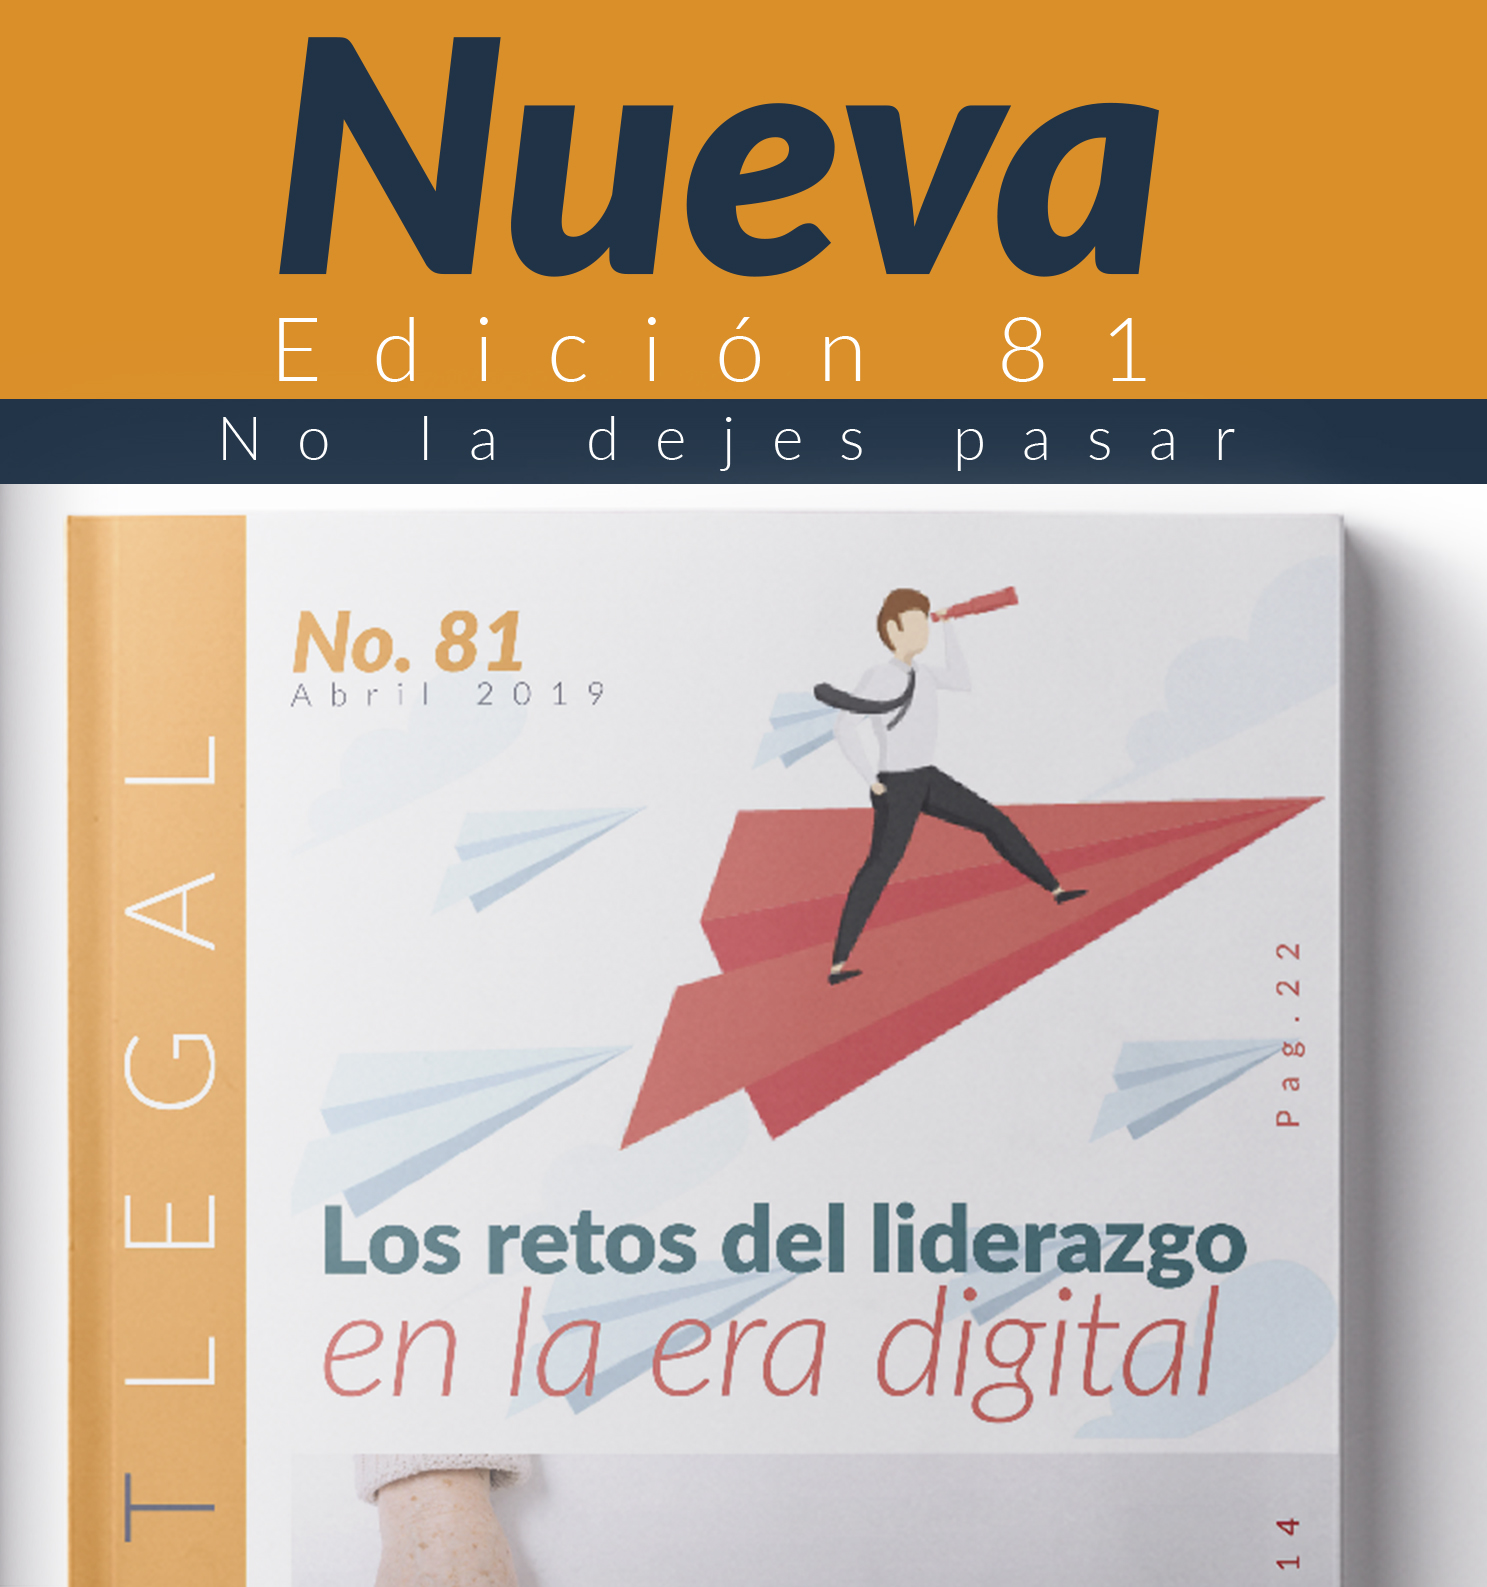 Edición Notinet legal No. 81 -Mayo -2019